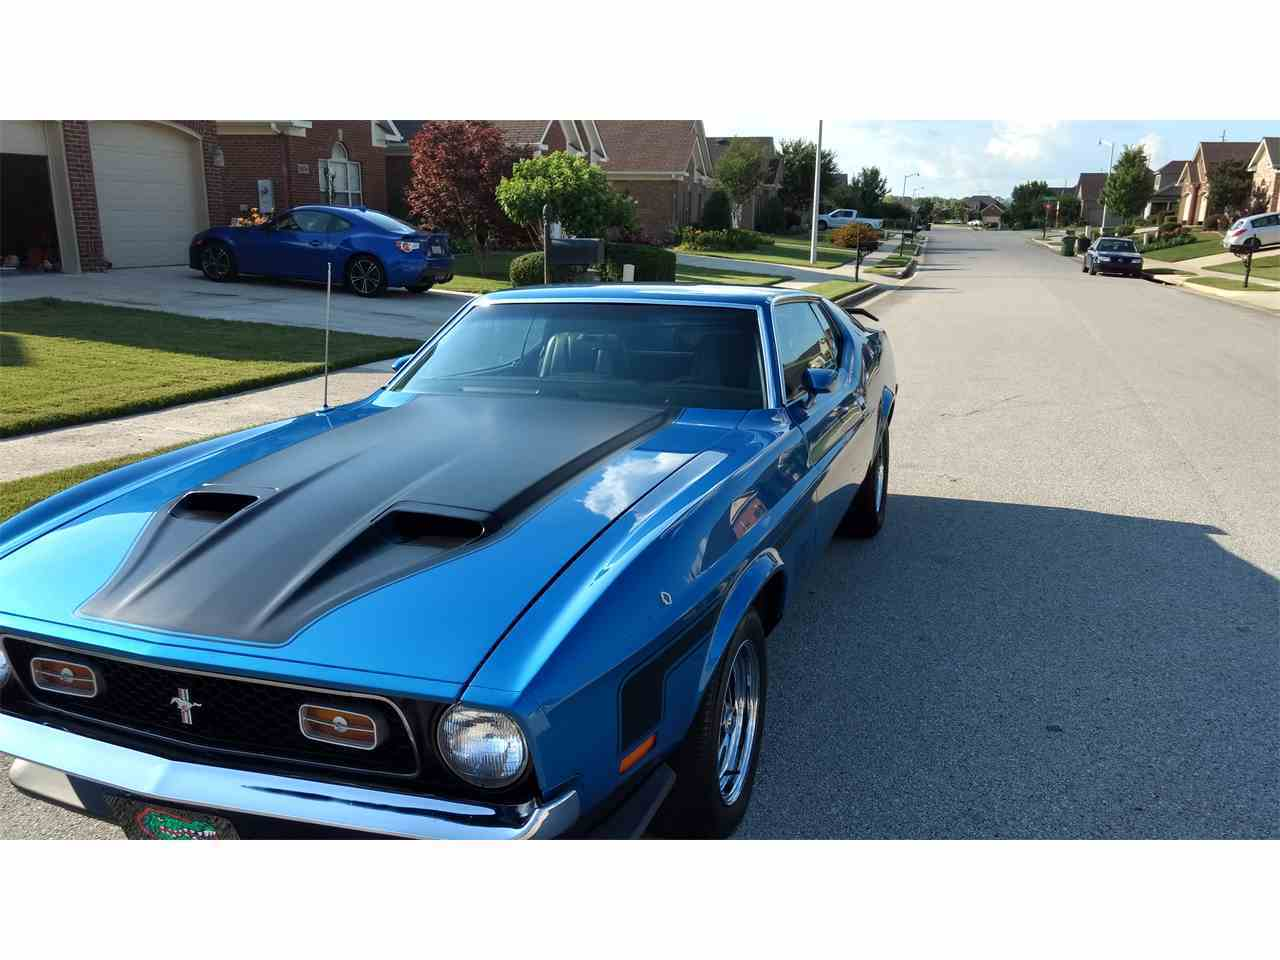 Large Picture of Classic 1972 Ford Mustang located in Alabama - $25,500.00 - LFK6